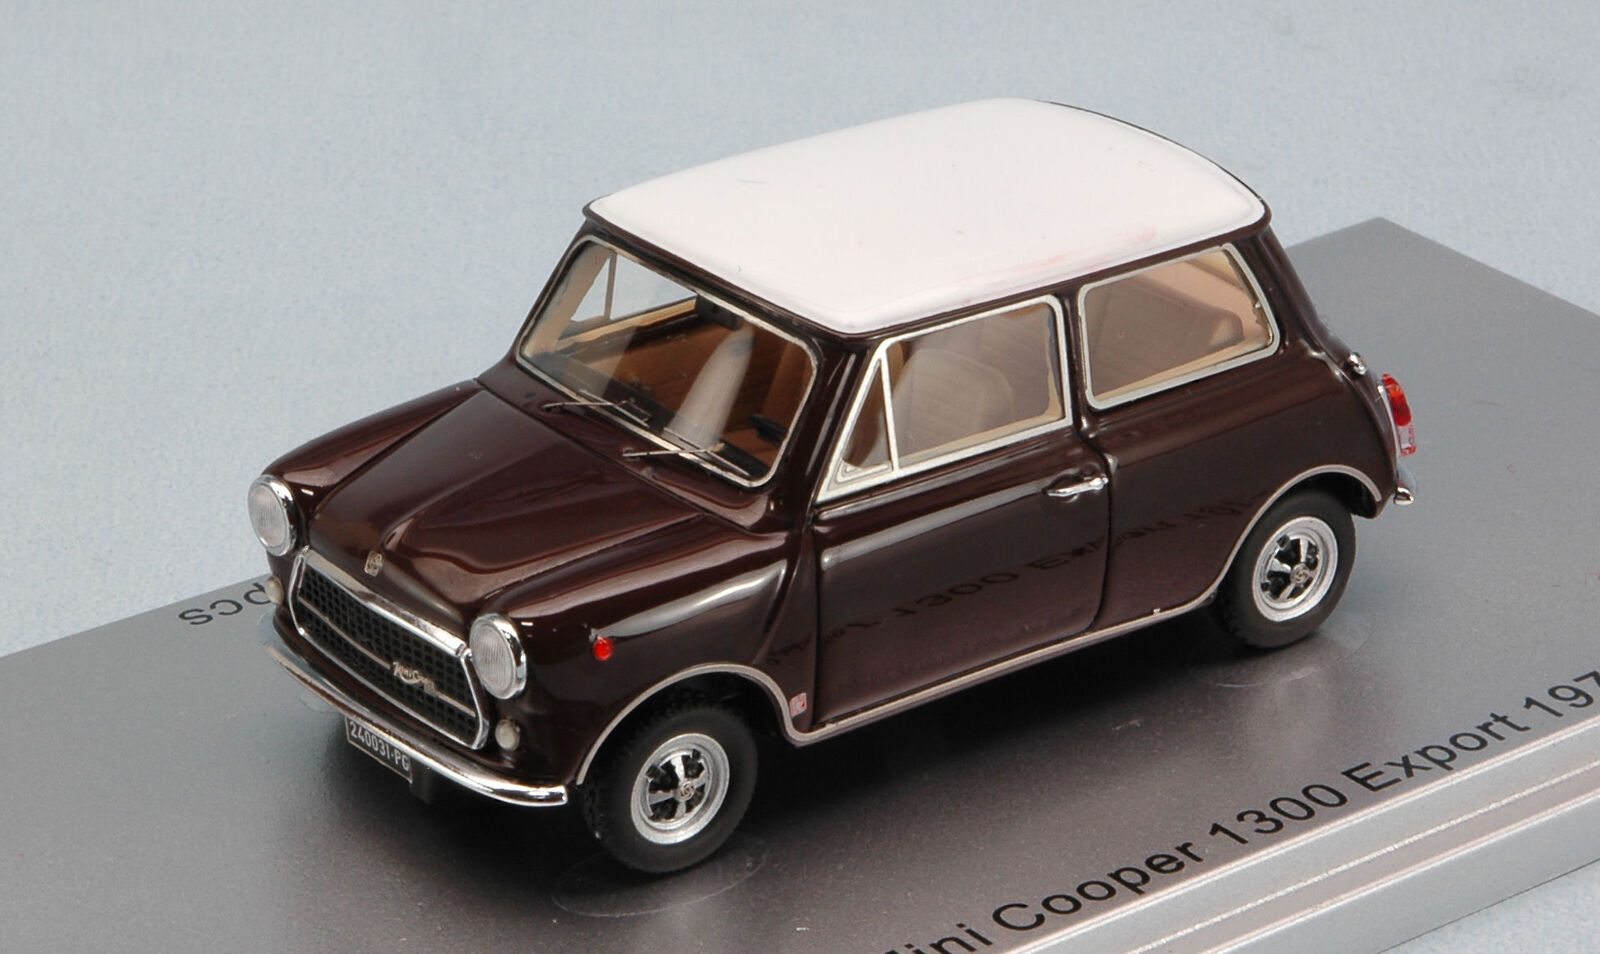 Innocenti Mini Cooper 1300 Export 2018 Castoro 72 1:43 Kess Model KS43012031